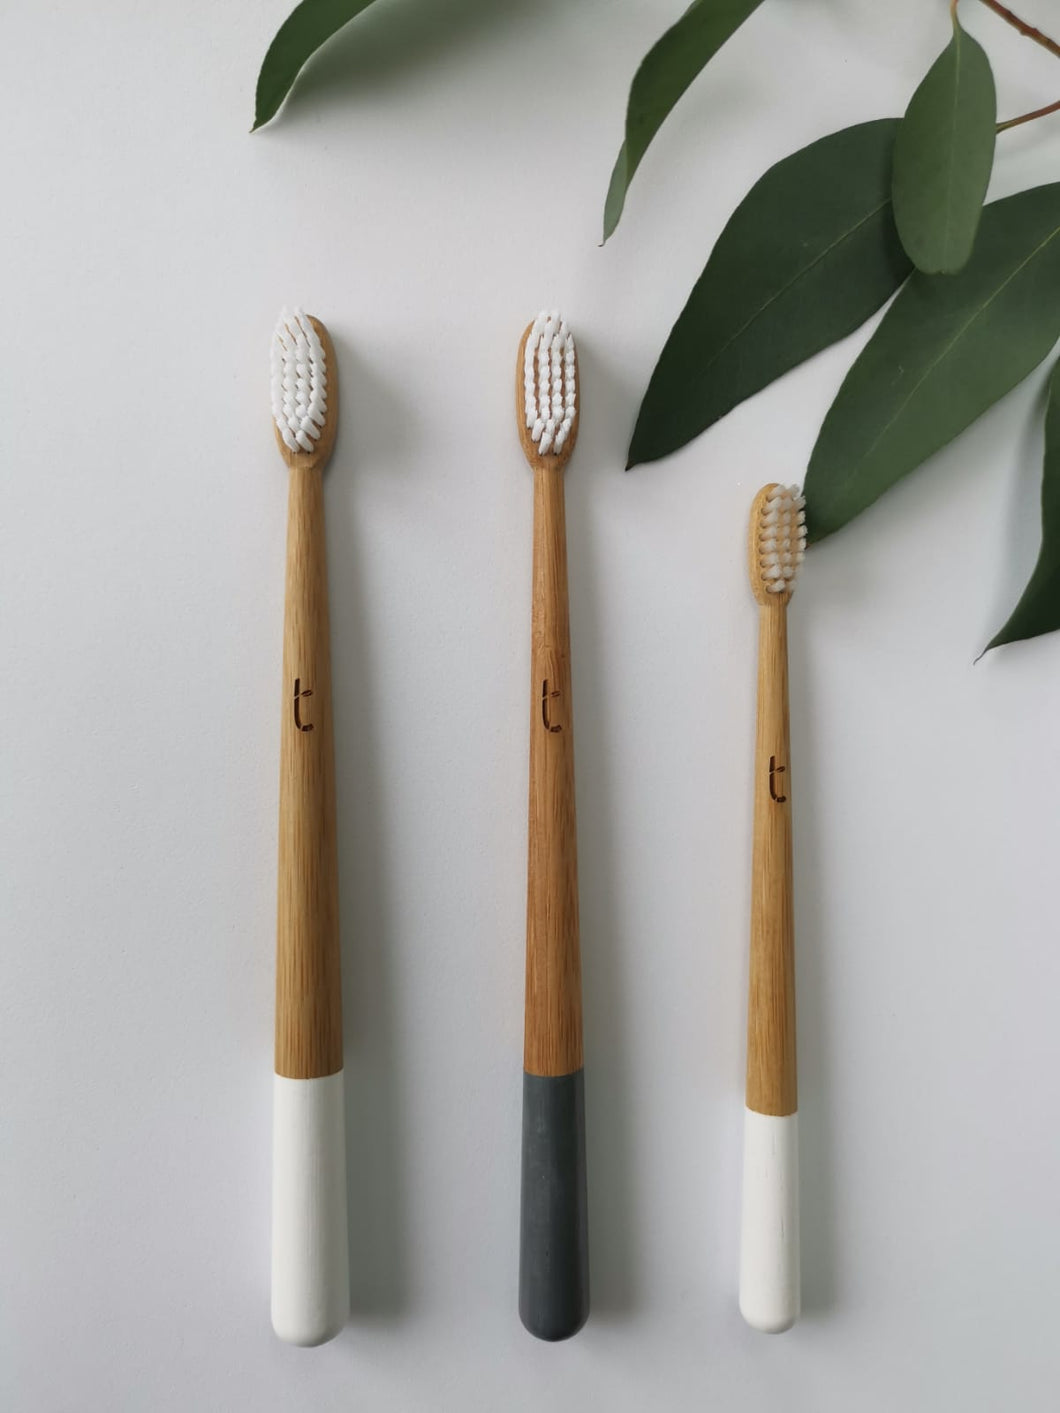 Truthbrush Bamboo Toothbrush Family Pack X 3